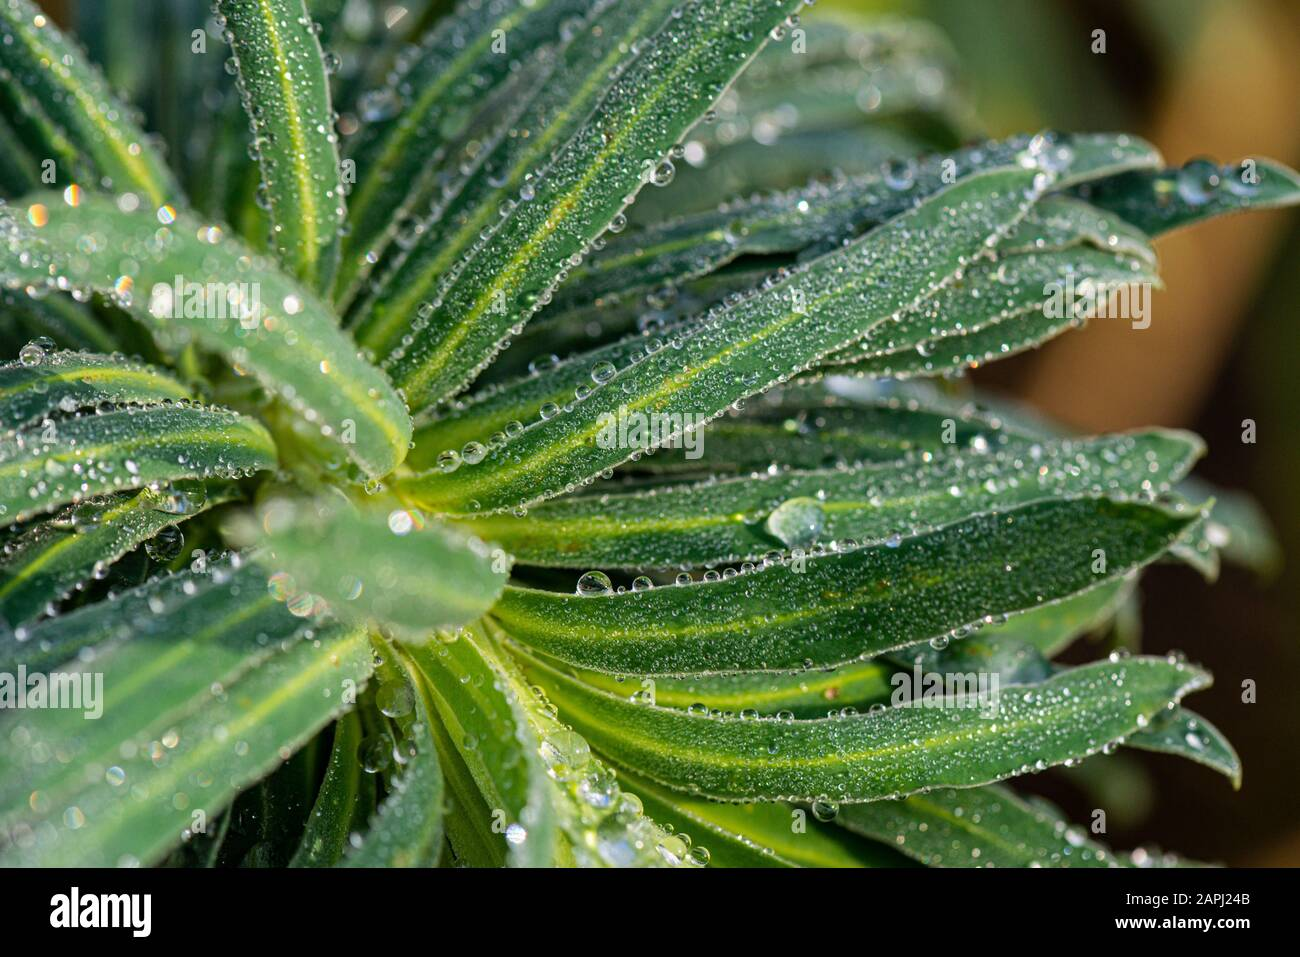 Water Droplets On The Leaves Of A Spurge Euphorbia Stock Photo